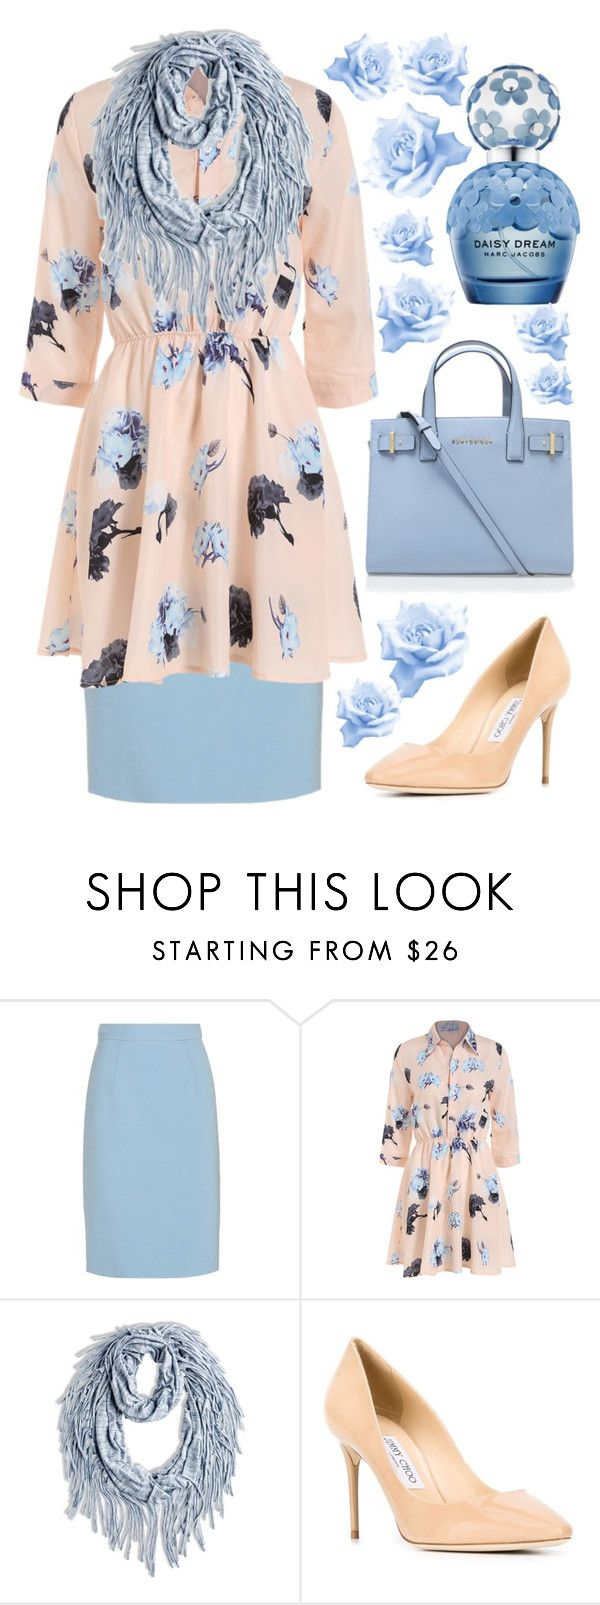 Modest outfits by lizzie2461 on Polyvore featuring Miu Miu, Jimmy Choo, Kurt Geiger and Chico's